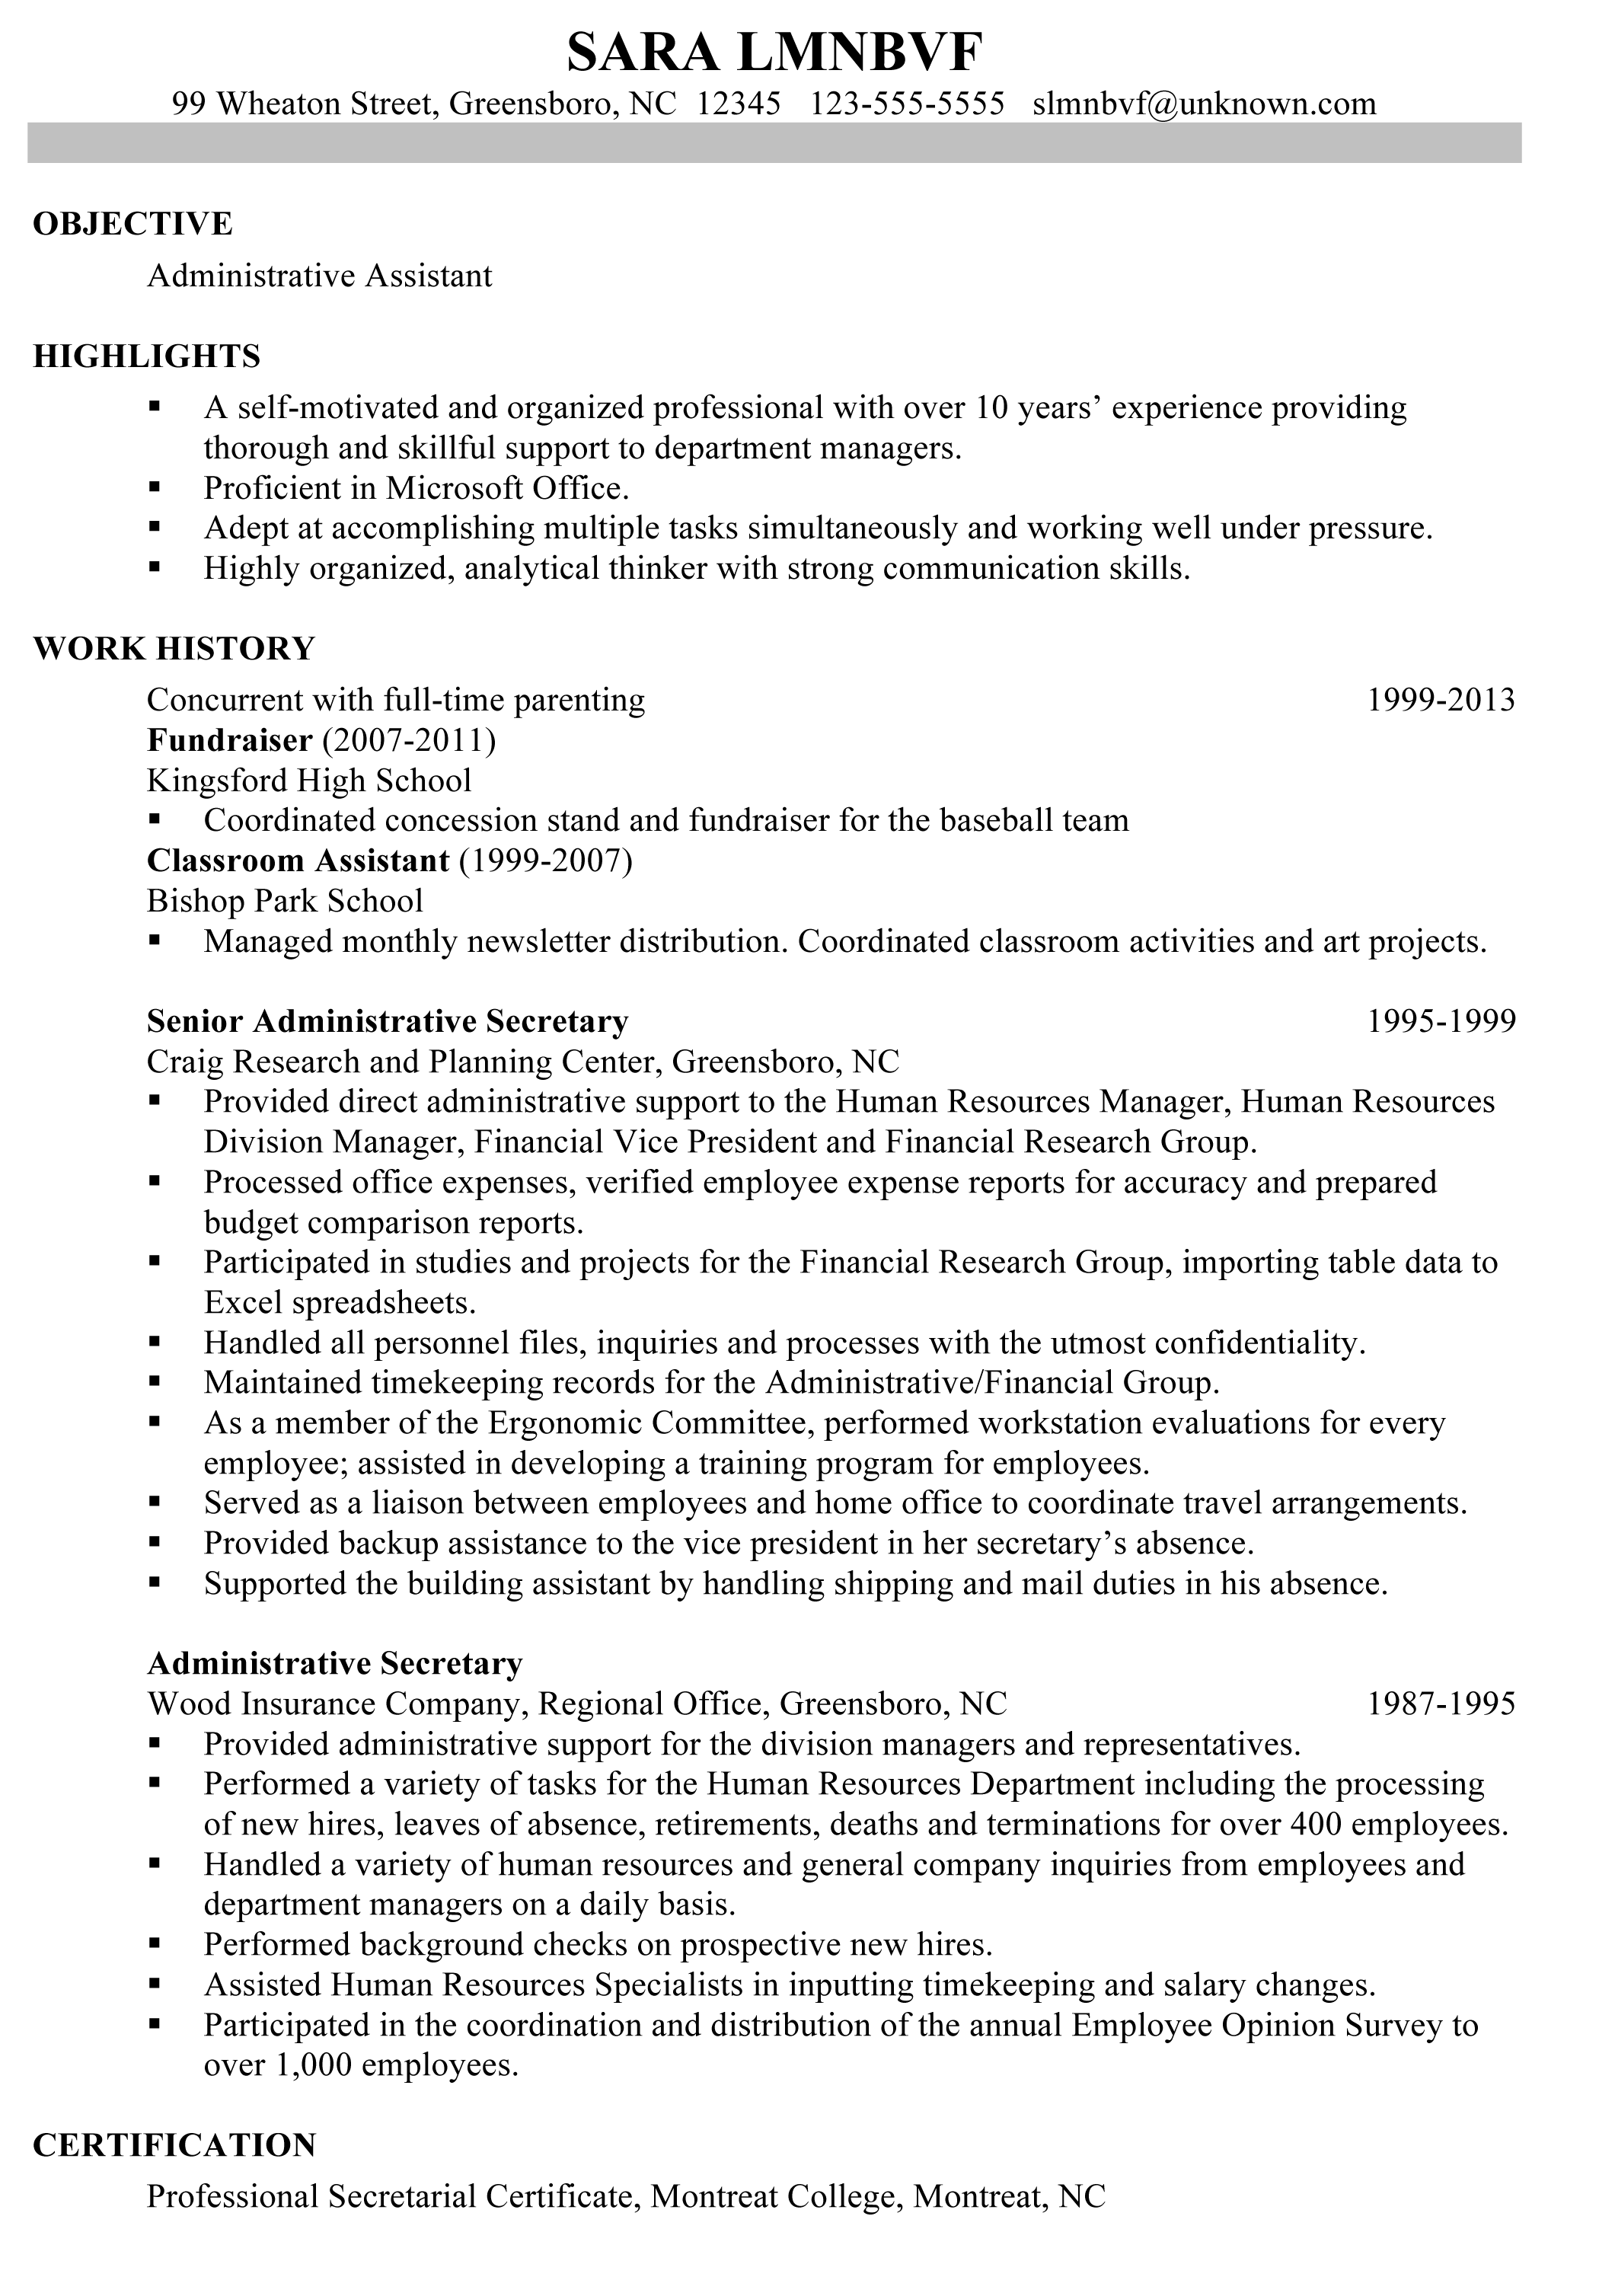 Resumes Templates Free Matching Resume Cover Letter Job Reference Page Samples